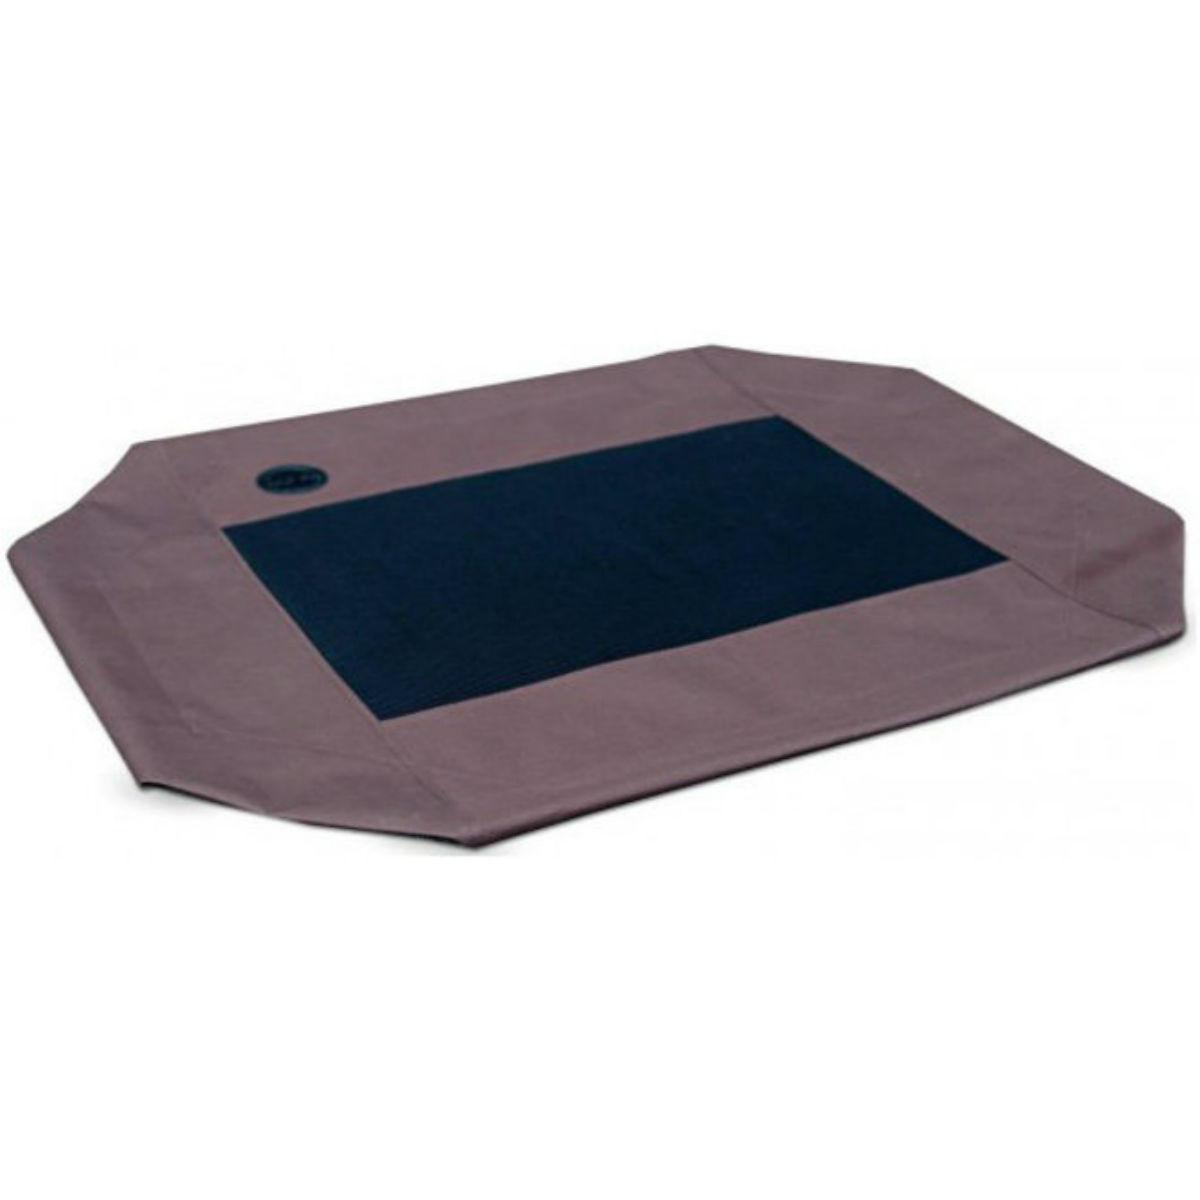 K&H Pet Products Pet Cot Replacement Cover - Chocolate